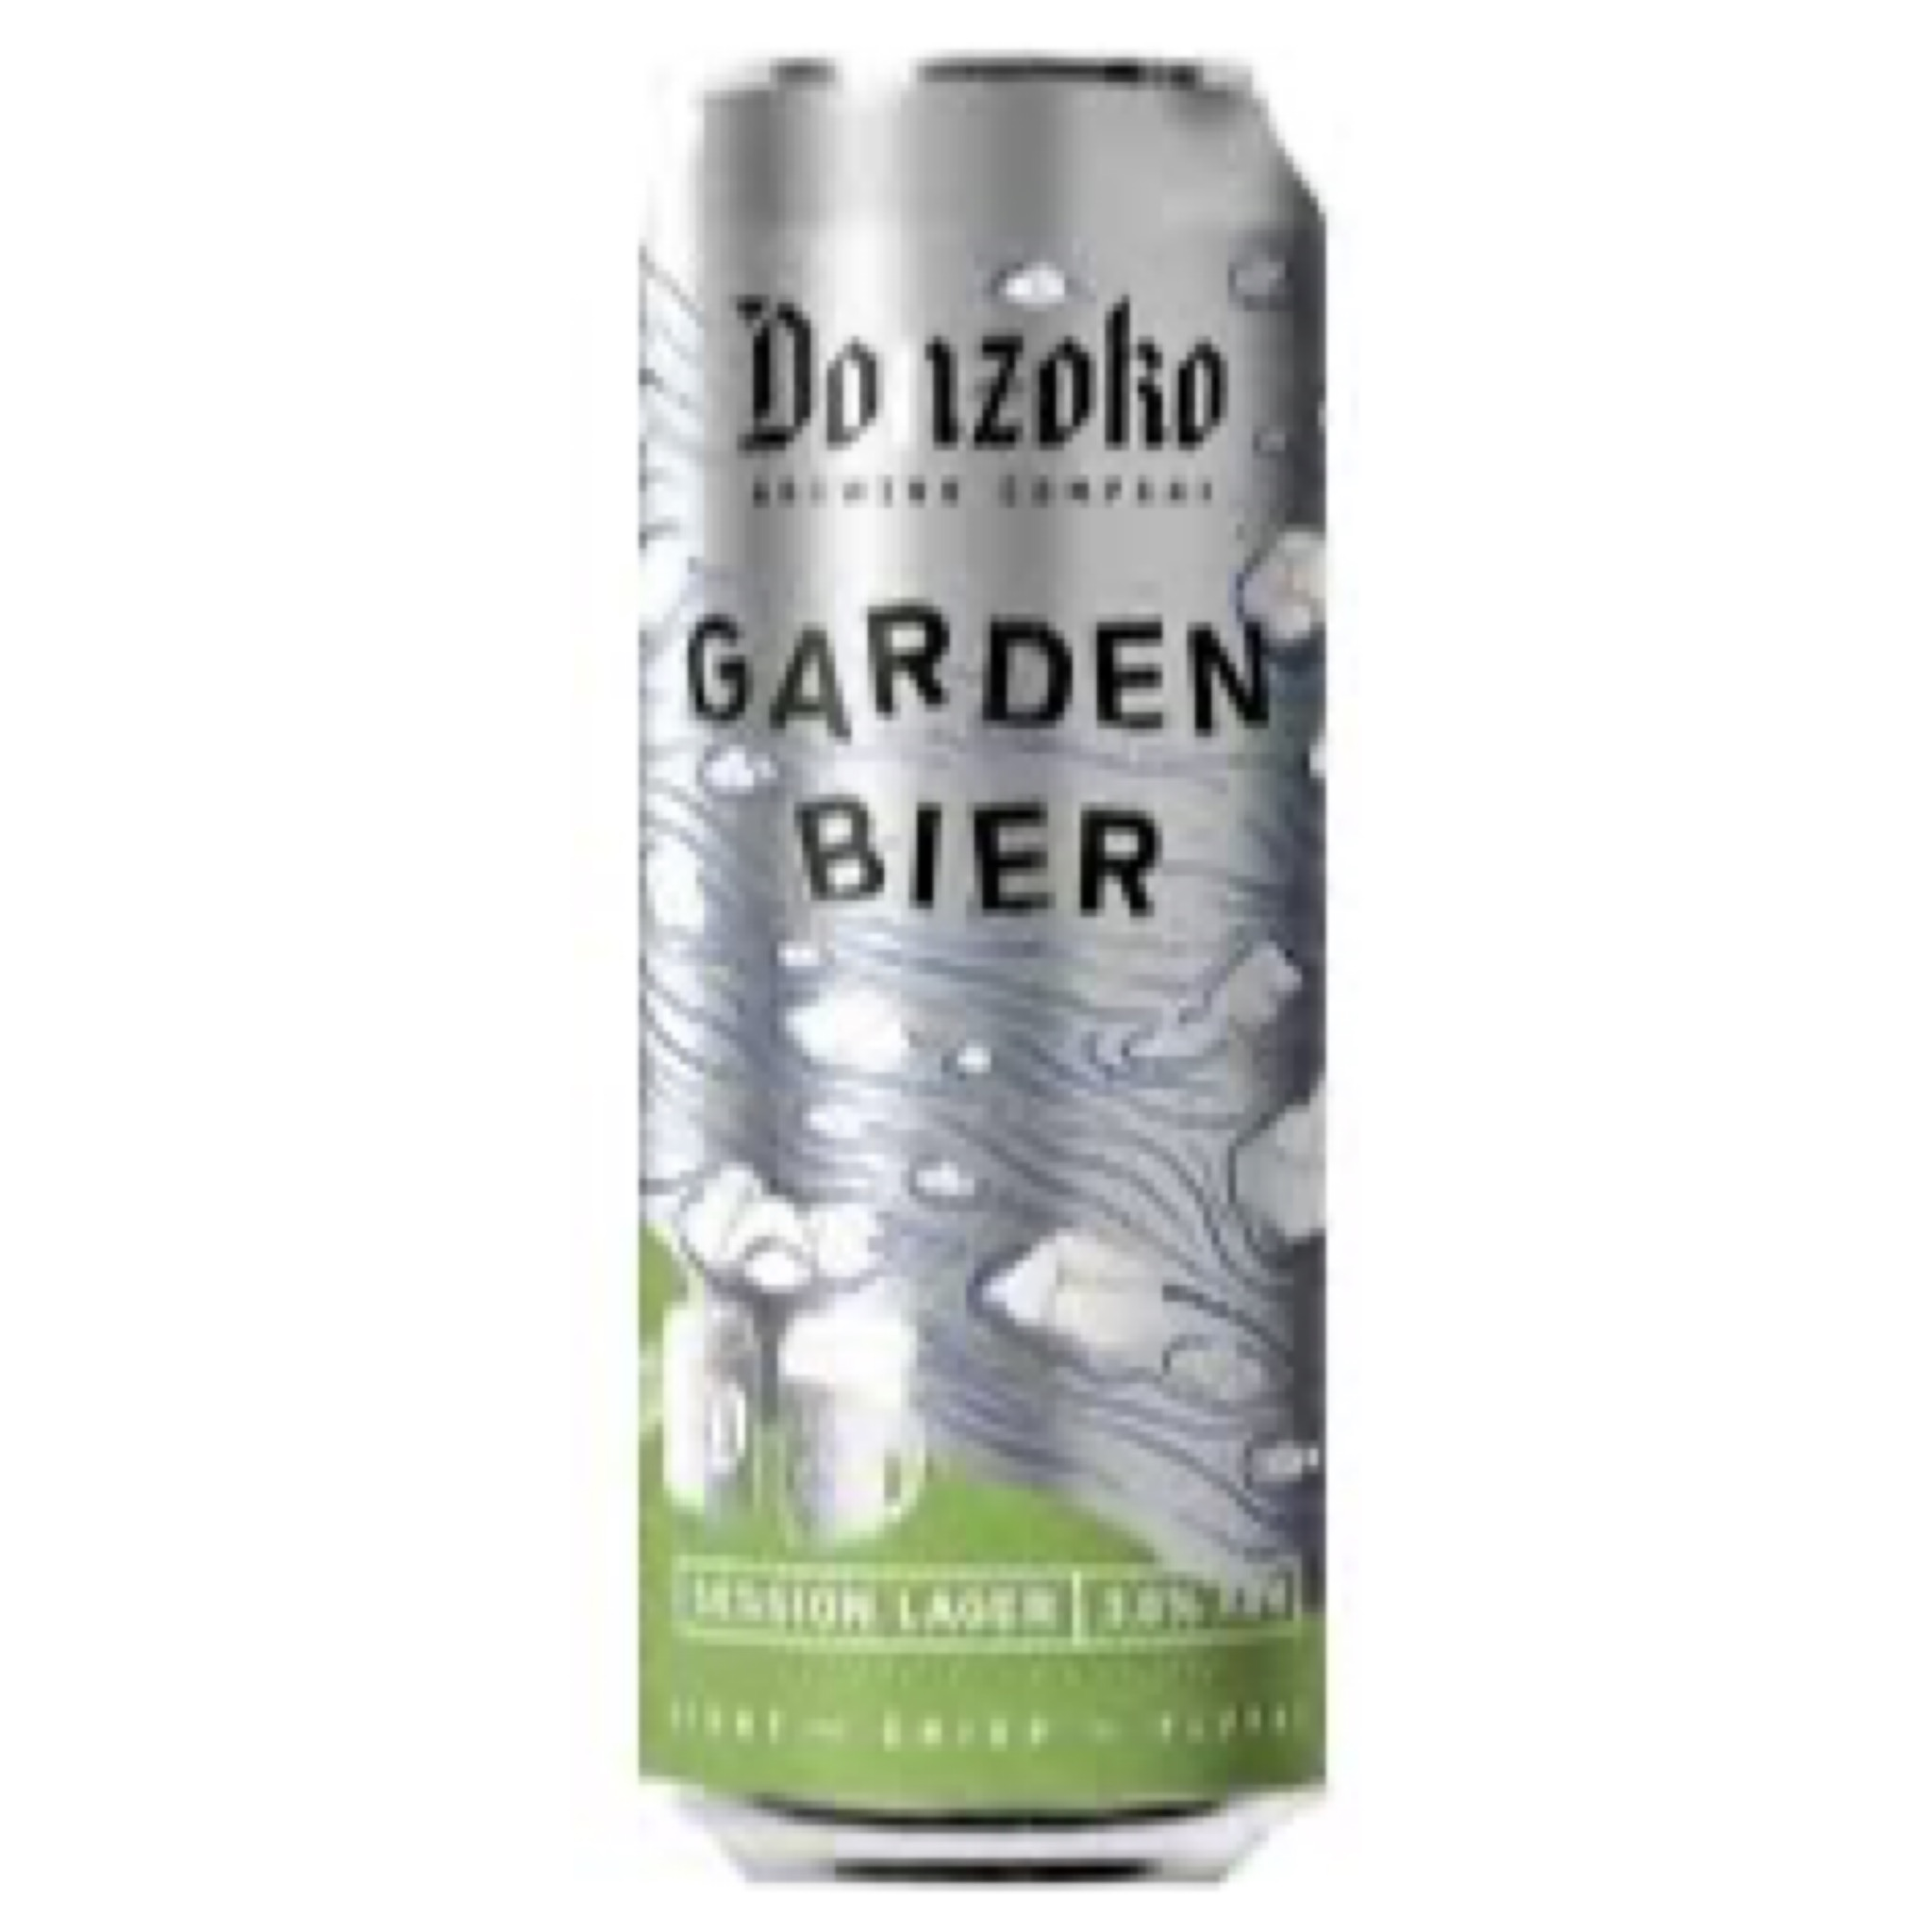 Garden Bier Session Lager 3.8% 500ml Donzoko Brewing